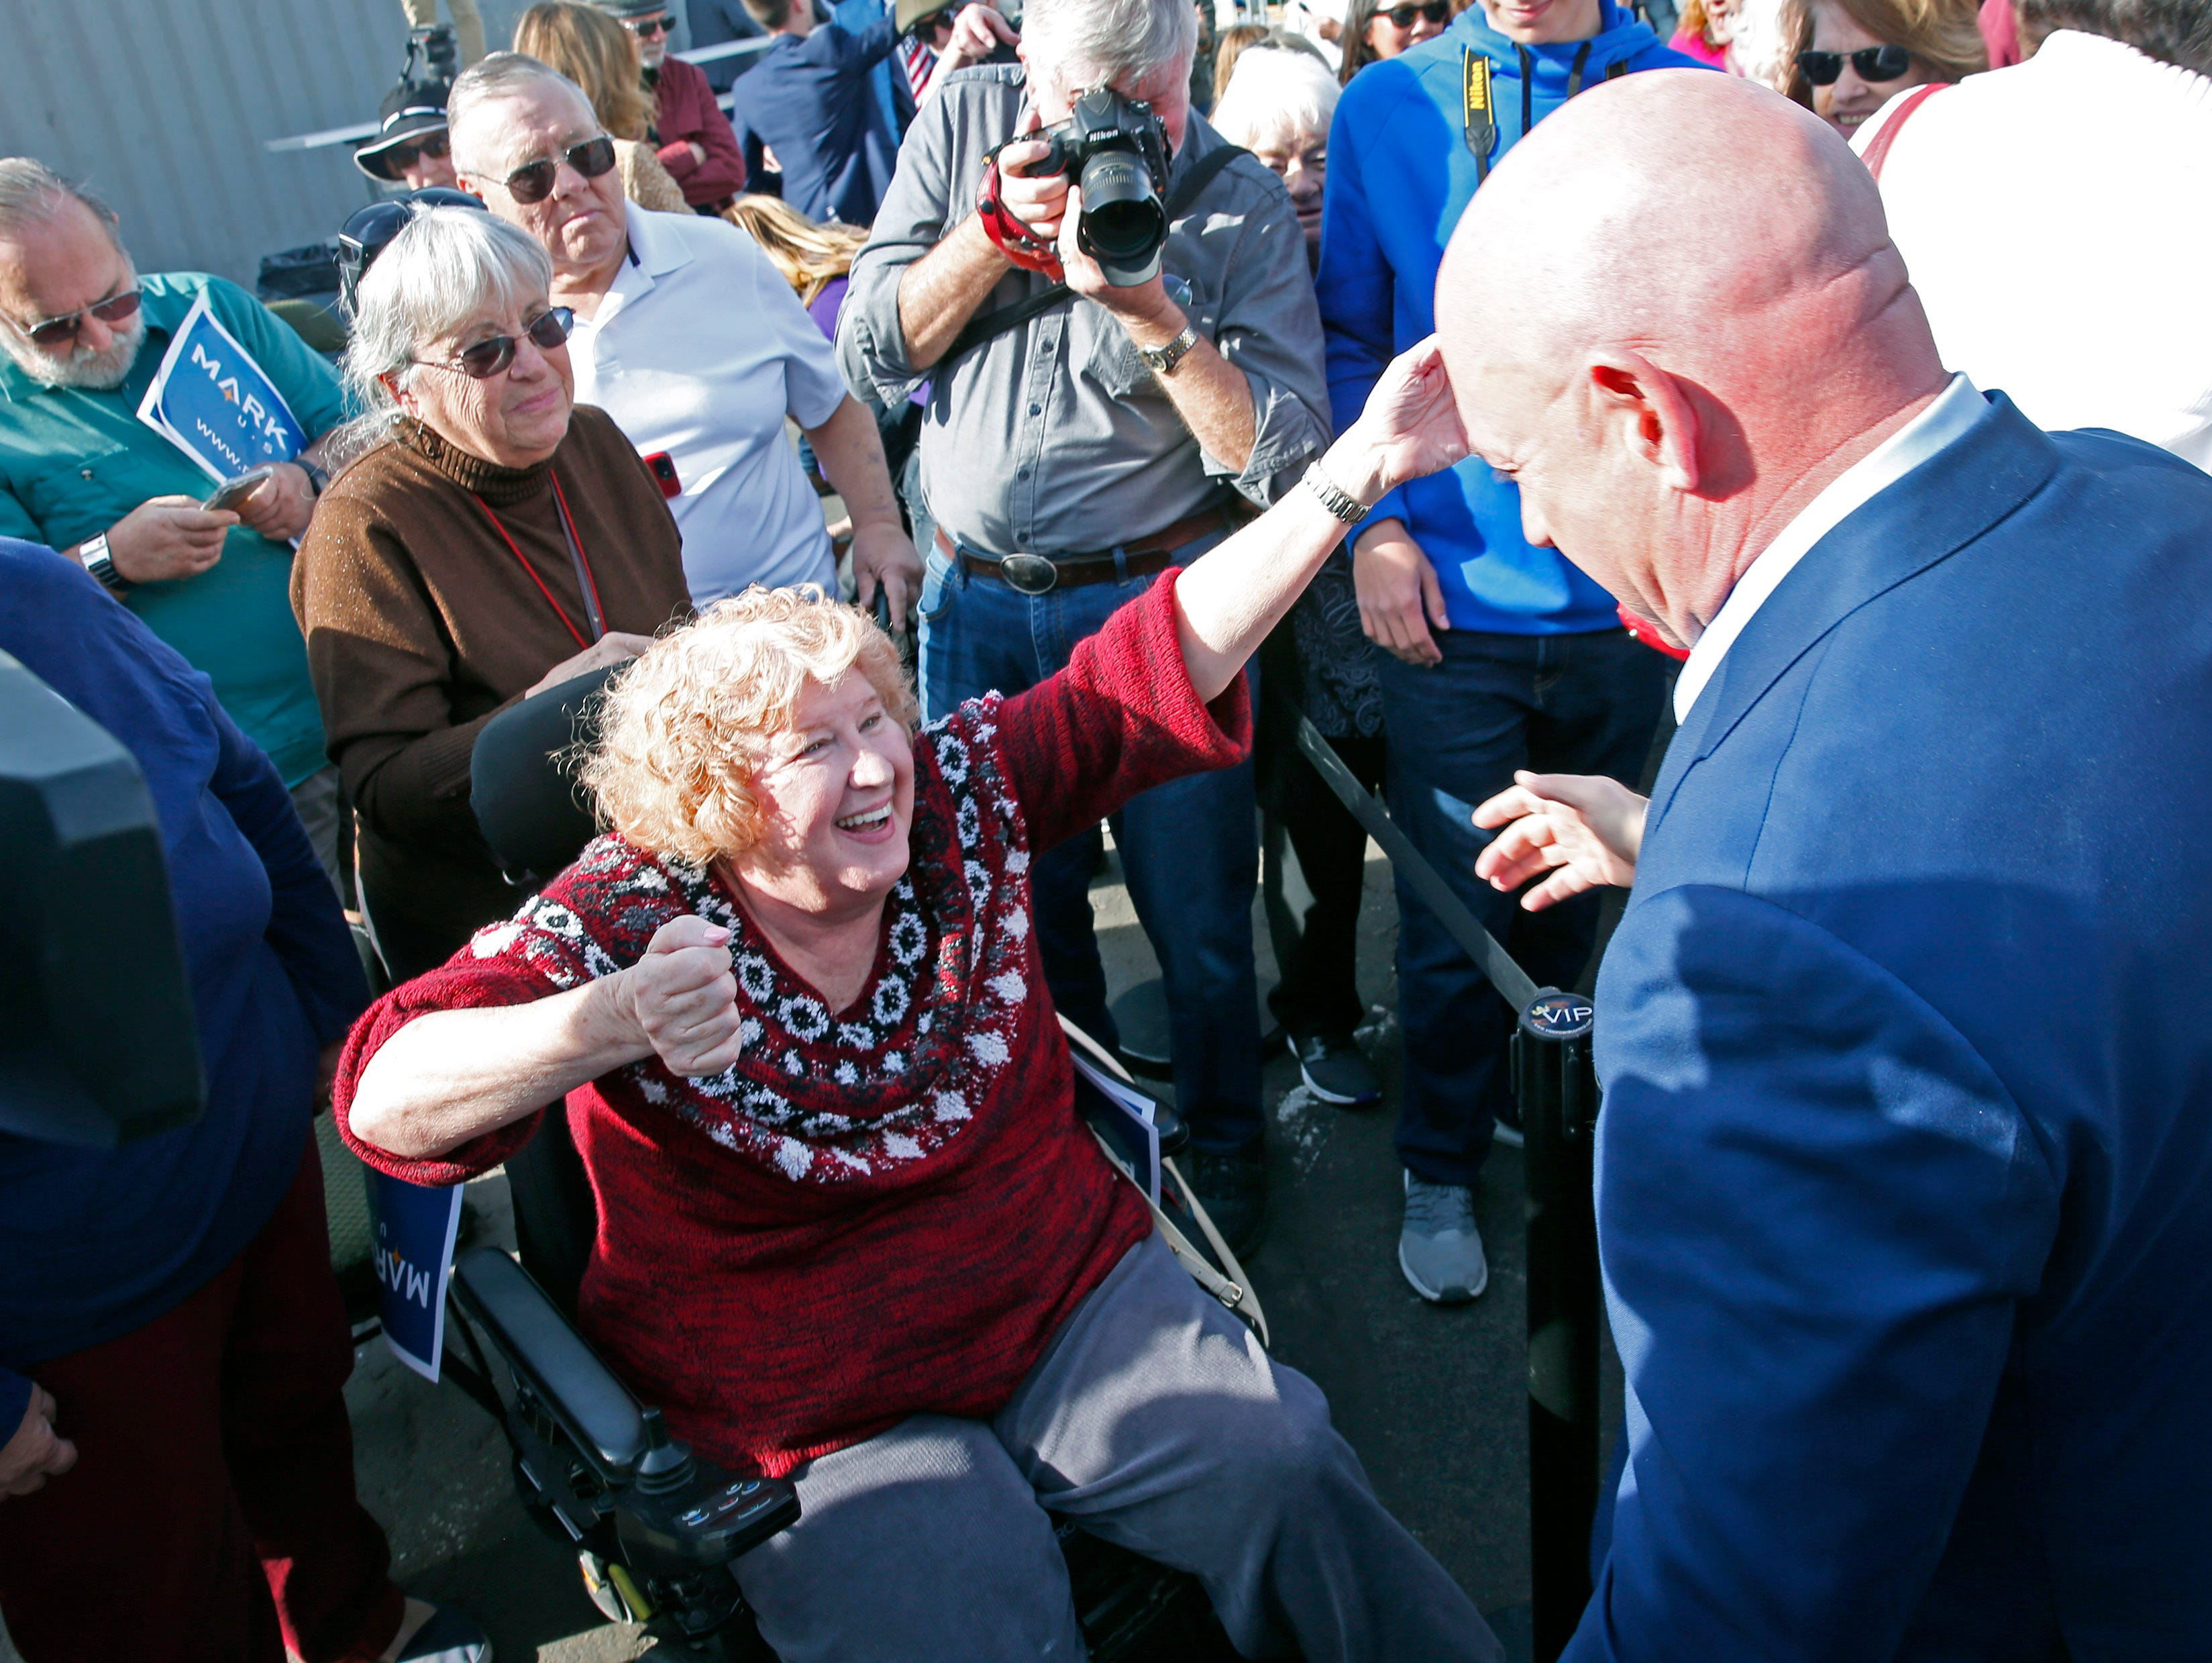 Bonnie Guzelf from Tempe greets Mark Kelly during a Senate launch event in Phoenix, Ariz. on Feb. 24, 2019. Kelly is running as a Democrat for the late Sen. John McCain's seat.